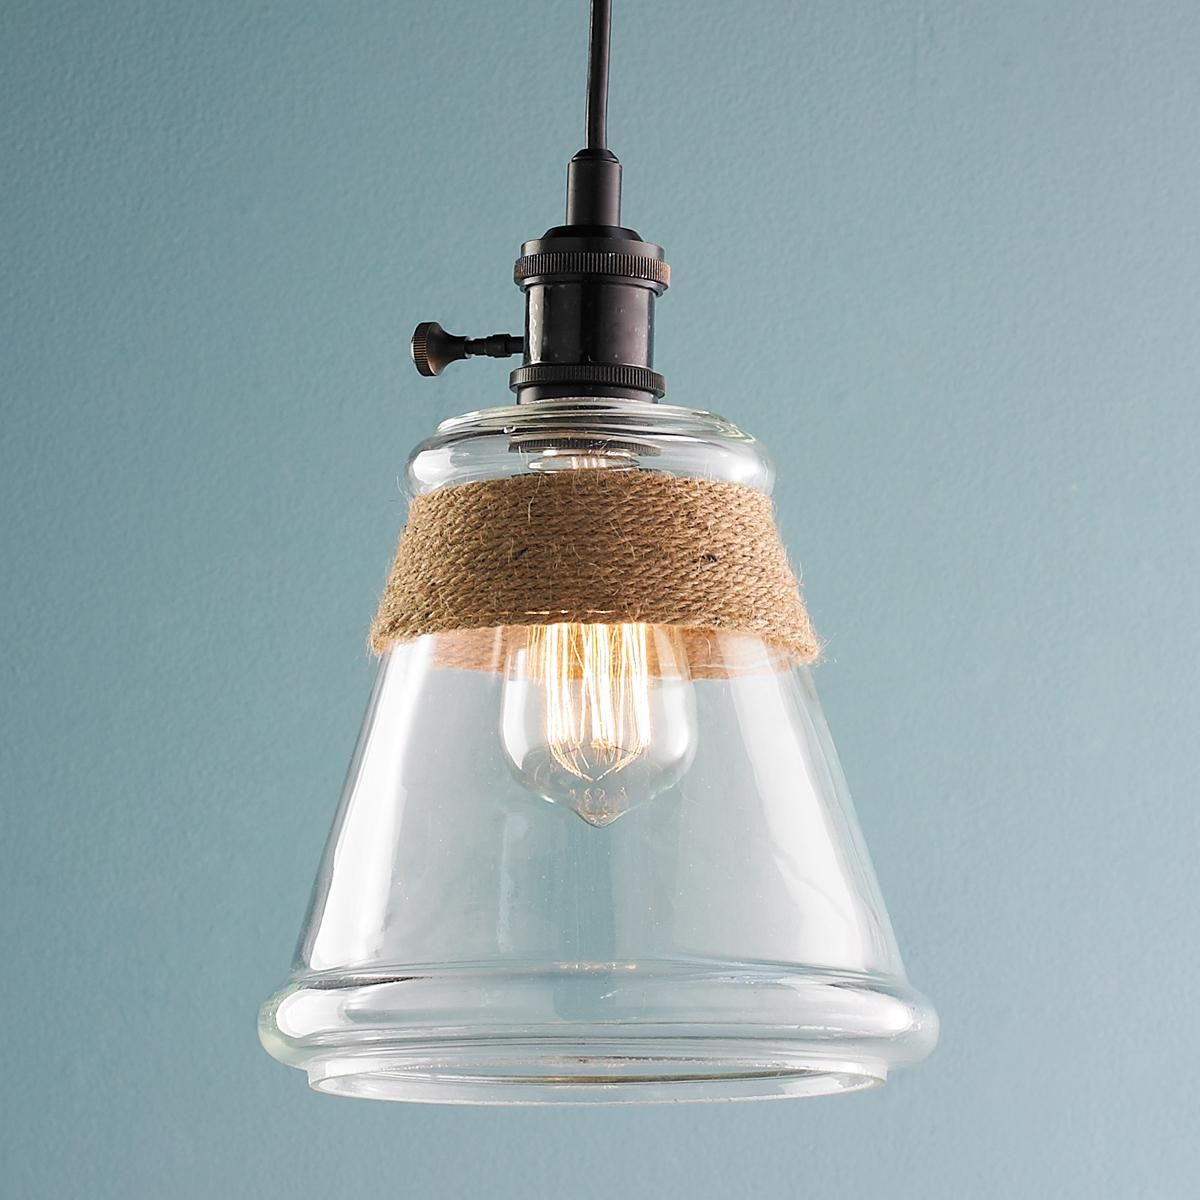 Rope Lights Kitchen: Clear Glass & Rope Pendant Light In 2019